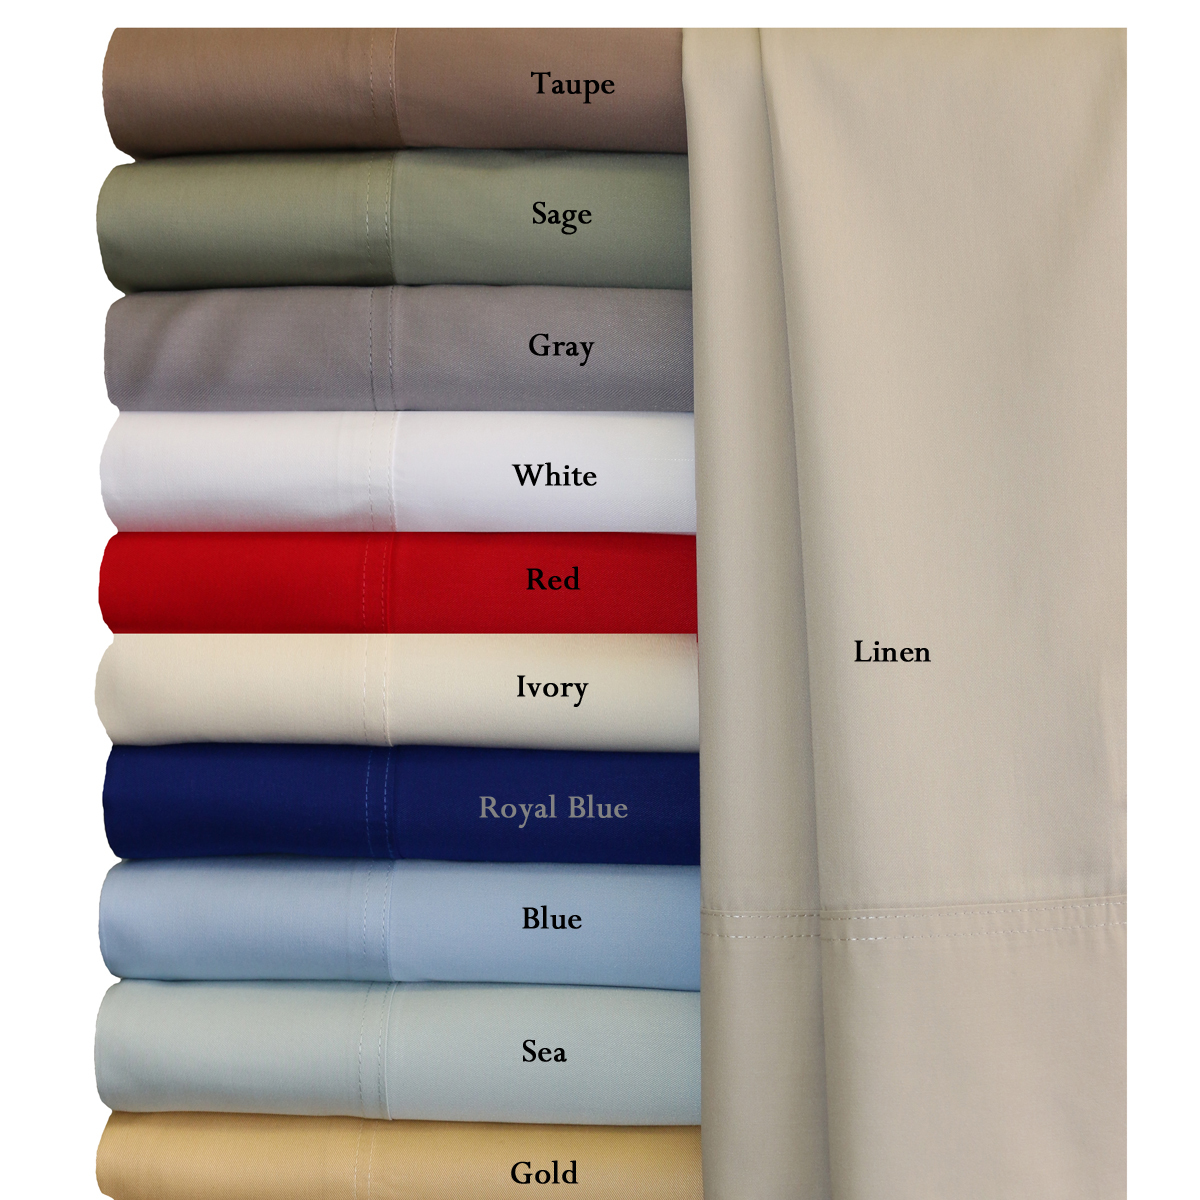 """Super Soft 100% Viscose from Bamboo Sheet Sets: Wrap your self in the softness of the luxurious 100% Rayon from Bamboo sheets like those found in royalty homes. You won't be able to go back to cotton sheets after trying these 100% Viscose from Bamboo sheets. Amazingly soft similar to cashmere of silk. 60% more absorbent than cotton. Sustainable, fast growth rate over 1 meter per day. Requires significantly less pesticides than cotton and is naturally irrigated. Natural anti-bacterial and deodorizing properties.*"""" Viscose from Bamboo """" or """" Rayon from Bamboo"""" are both interchangeable common terms used when referring the Bamboo fabric derivatives. Bamboo woods undergo additional process before the fibers are spun into yarns. Therefore, bamboo yarns are turned into a Viscose or Rayon than woven to create bamboo fabrics.* Bamboo is one of the fastest growing plants because of it's ability to absorb water and is thus a very environmentally friendly material. These are the """" Greenest Sheets"""" around. This explain why bamboo sheets wick so much water away from the body, keeping people dry and comfortable. Machine wash in cold water. Delicate cycle with mild detergent. No Bleach. Tumble Dry on low heat. Remove immediately at end of cycle. Press with warm iron if needed. Do not Use Hot water."""